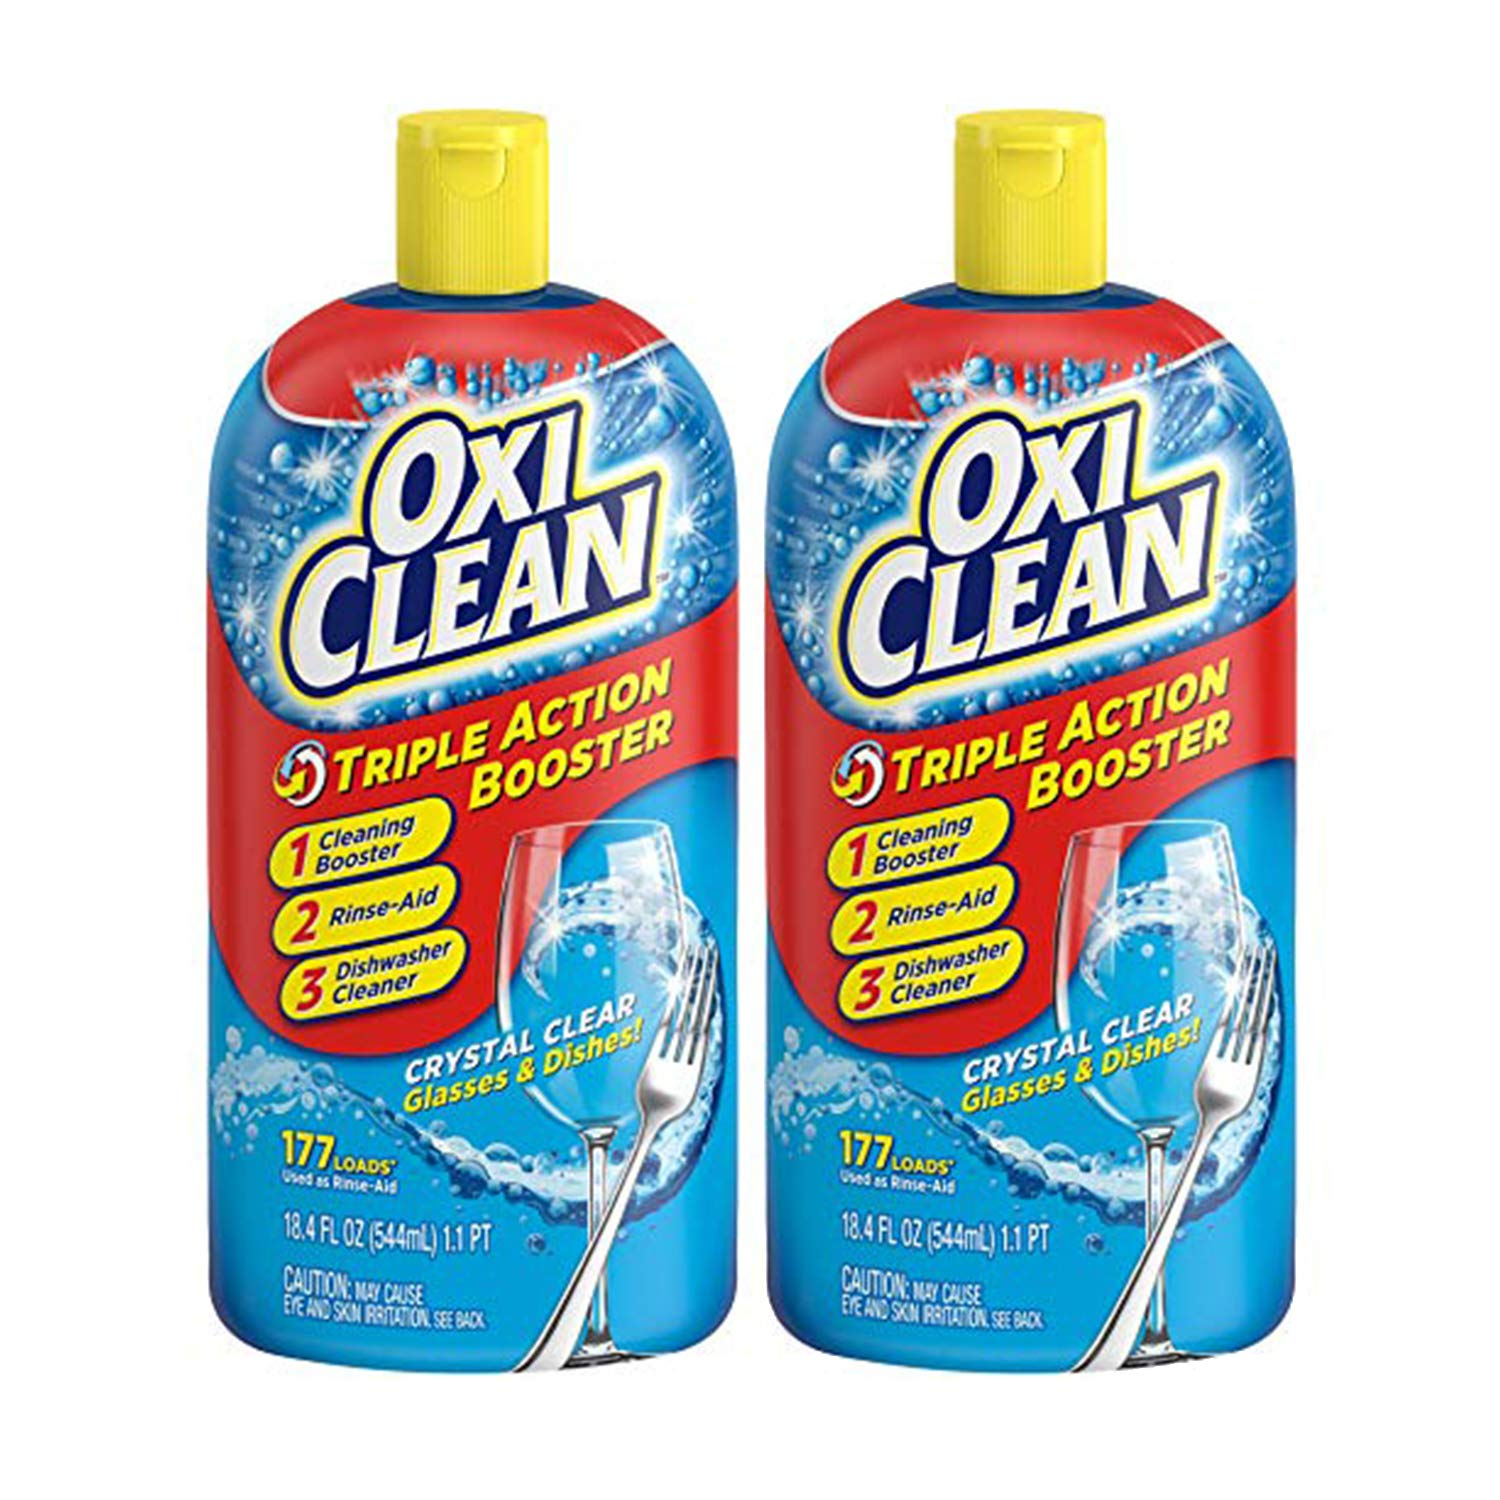 OxiClean Triple Action Dishwashing Booster, 18.4 oz. (Pack of 2)